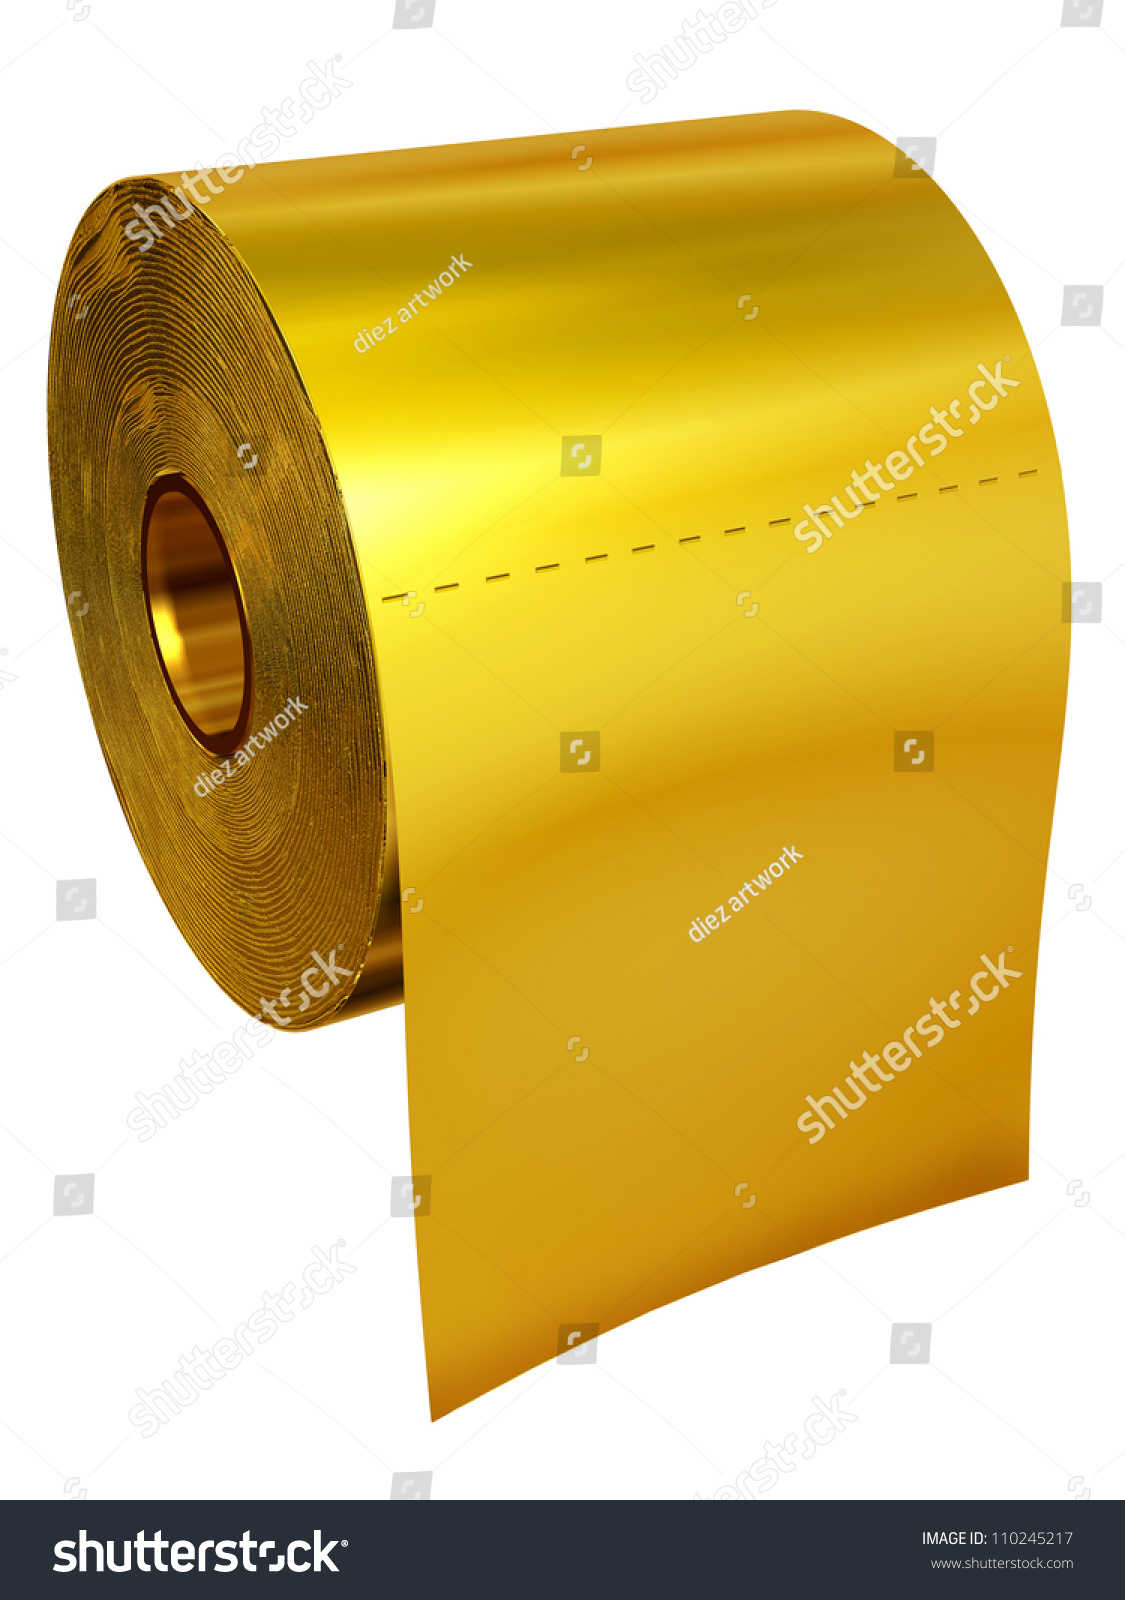 toilet made of gold. Roll of toilet tissue made gold Toilet Tissue Made Gold Stock Illustration 110245217